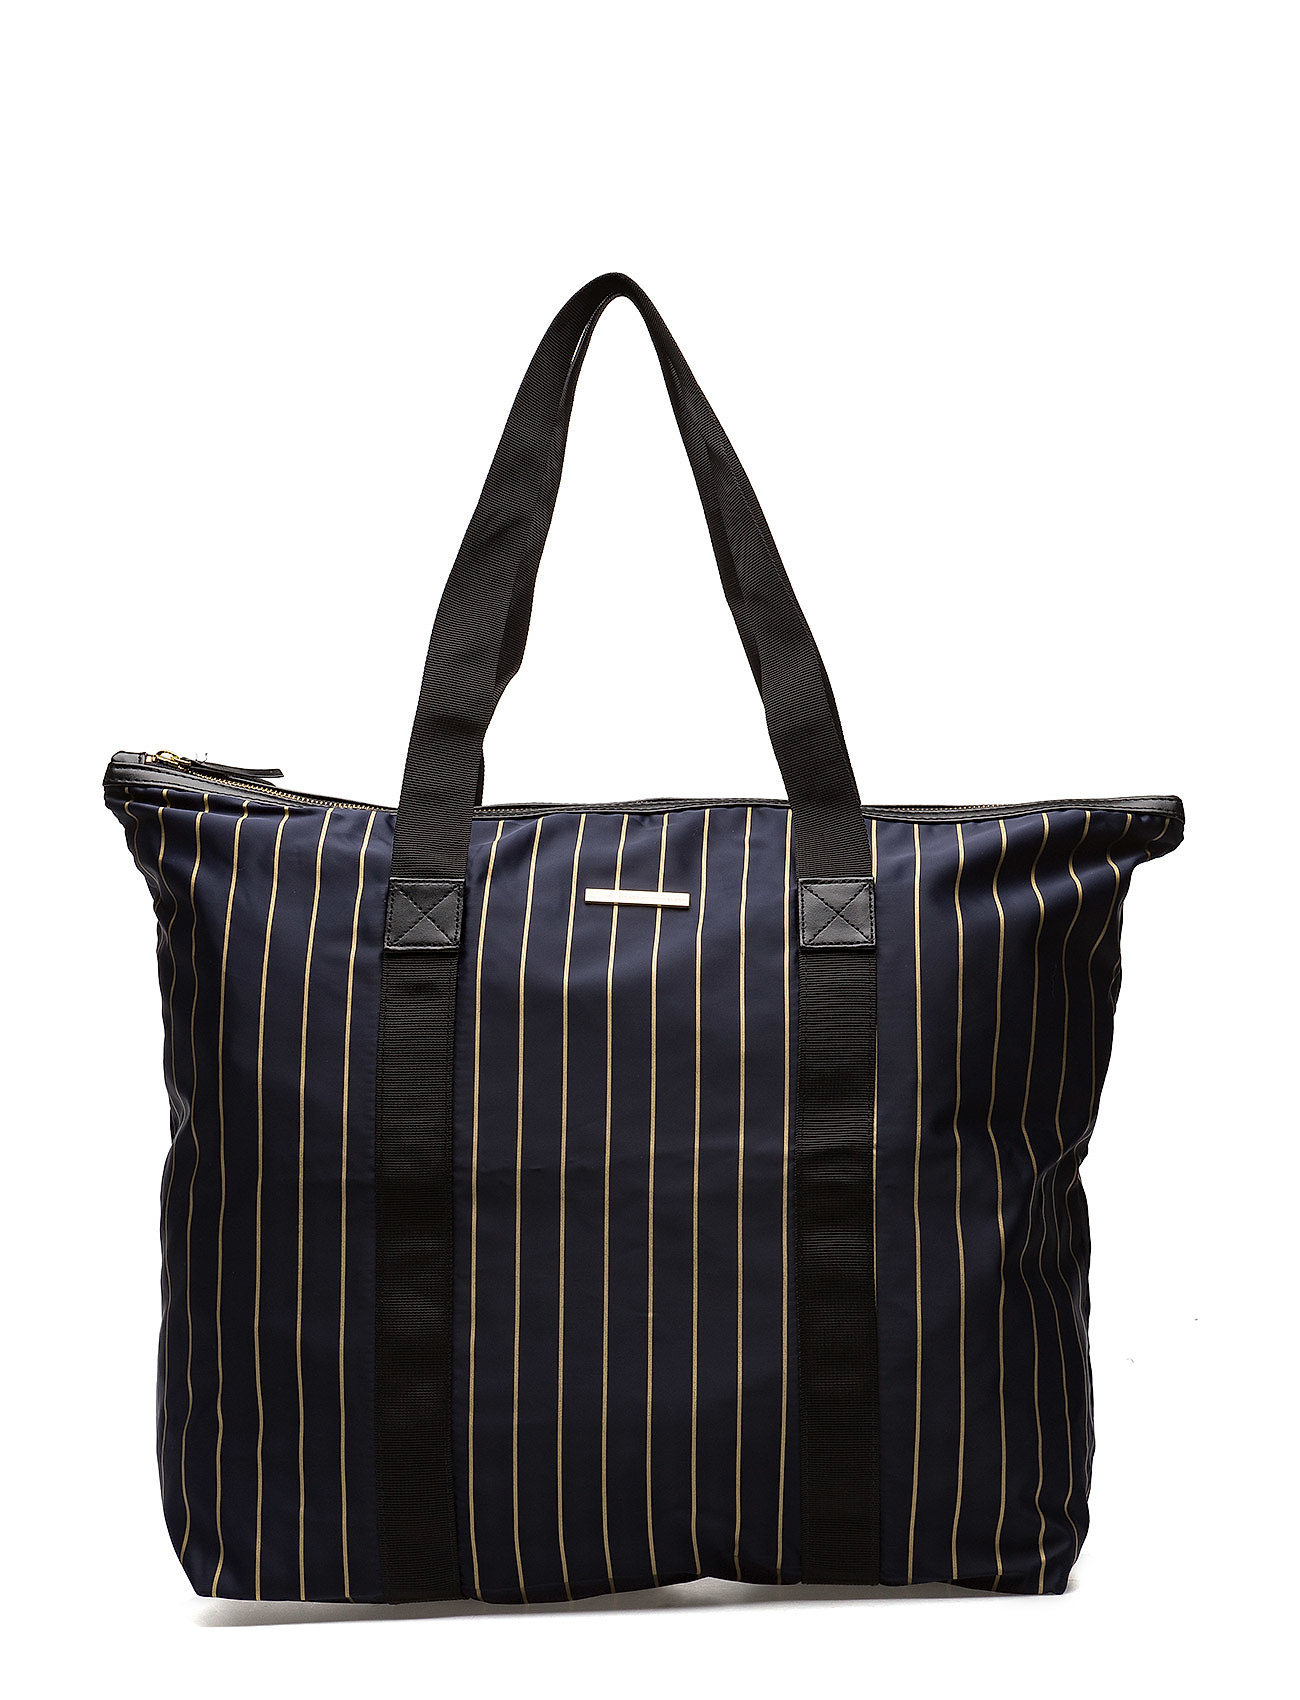 Image of Day Bag Bags Weekend & Gym Bags Blå DAY Et (3378391633)